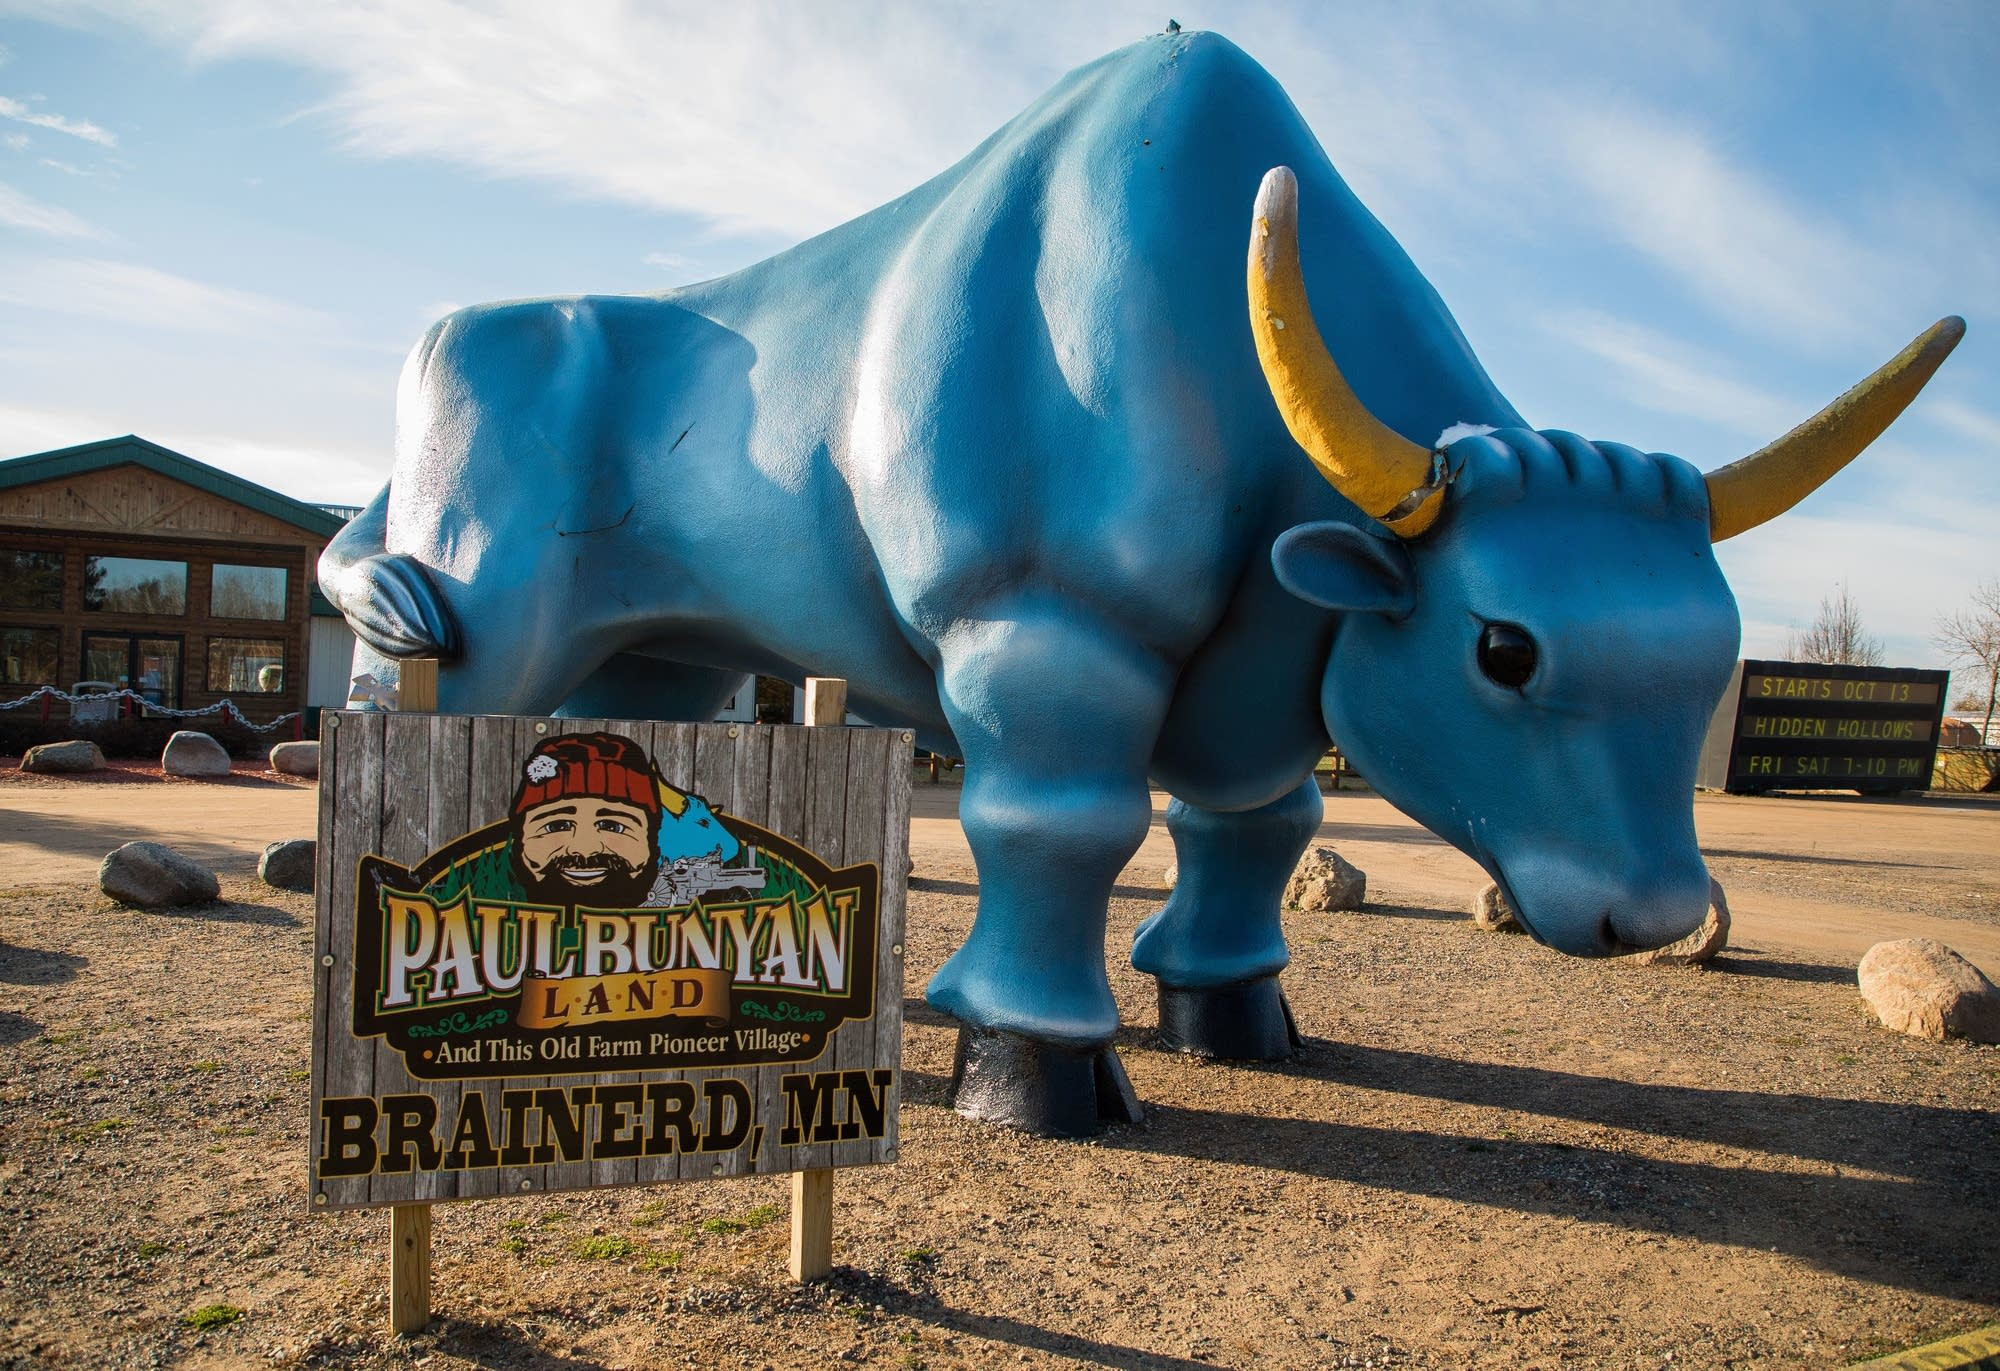 A giant Babe the Blue Ox attraction sits just outside Brainerd.